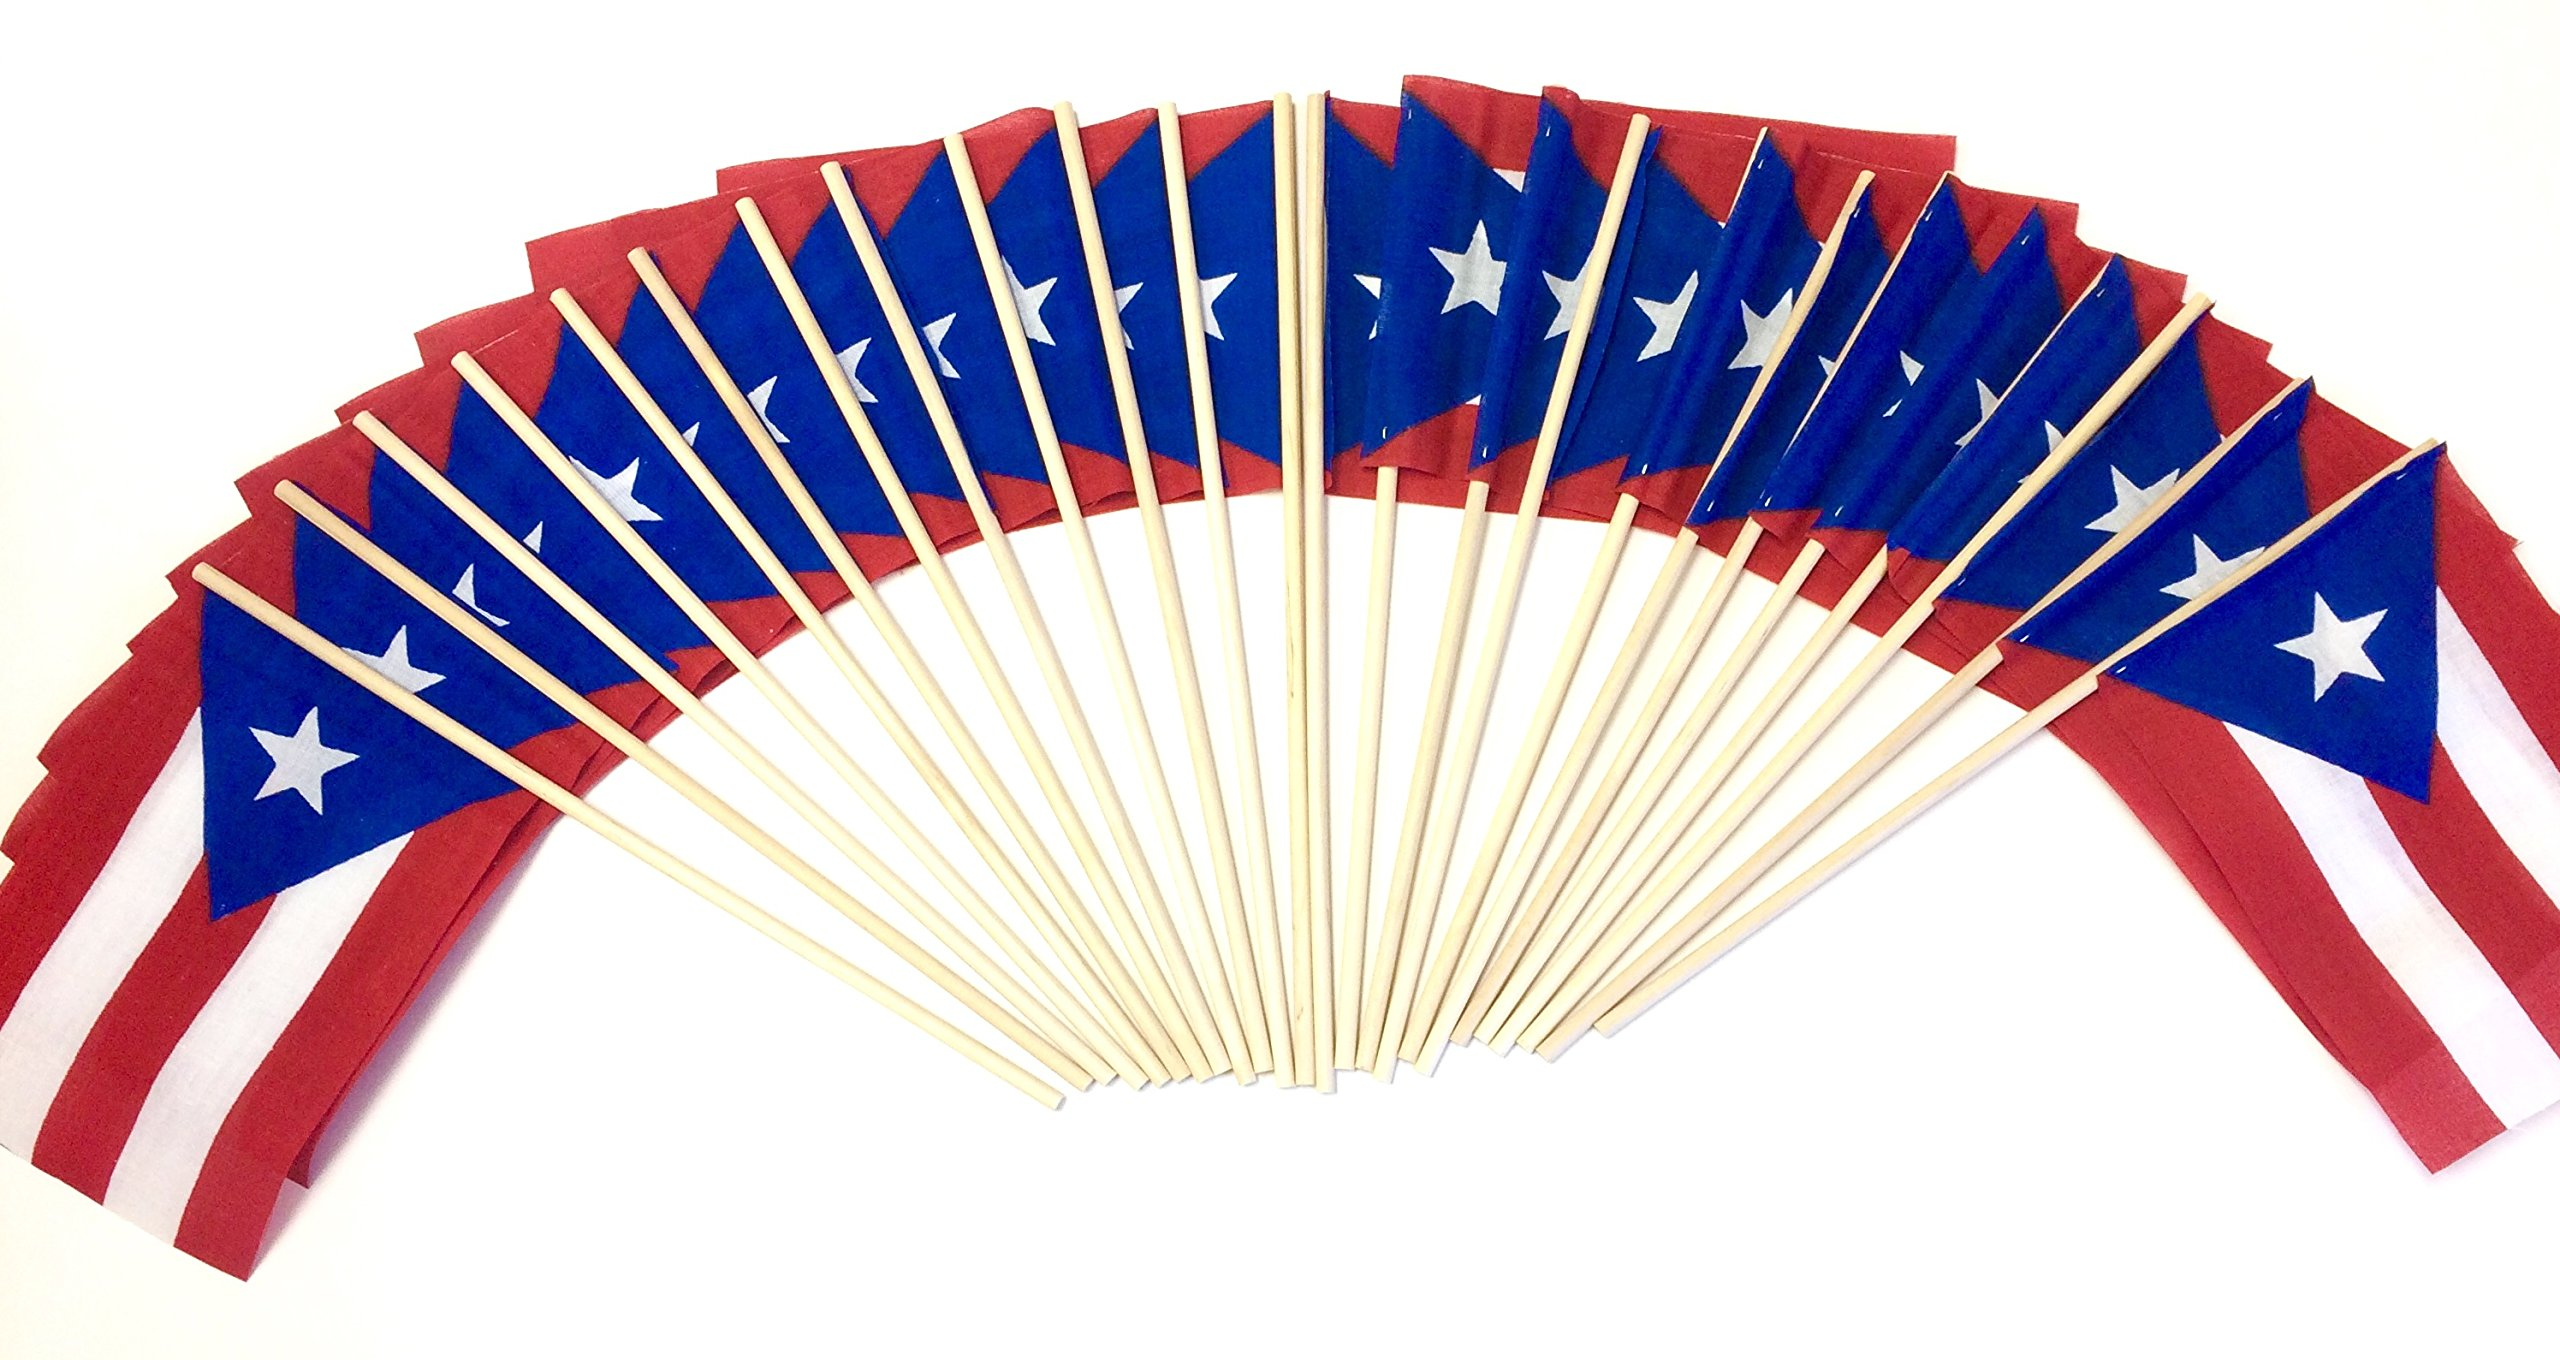 "Made in the USA!! PACK of 24 Cotton 4""x6"" Puerto Rico Miniature Desk & Table Flags, 2 Dozen 4""x 6"" Puerto Rican Borinquen Small Mini Stick Flags"